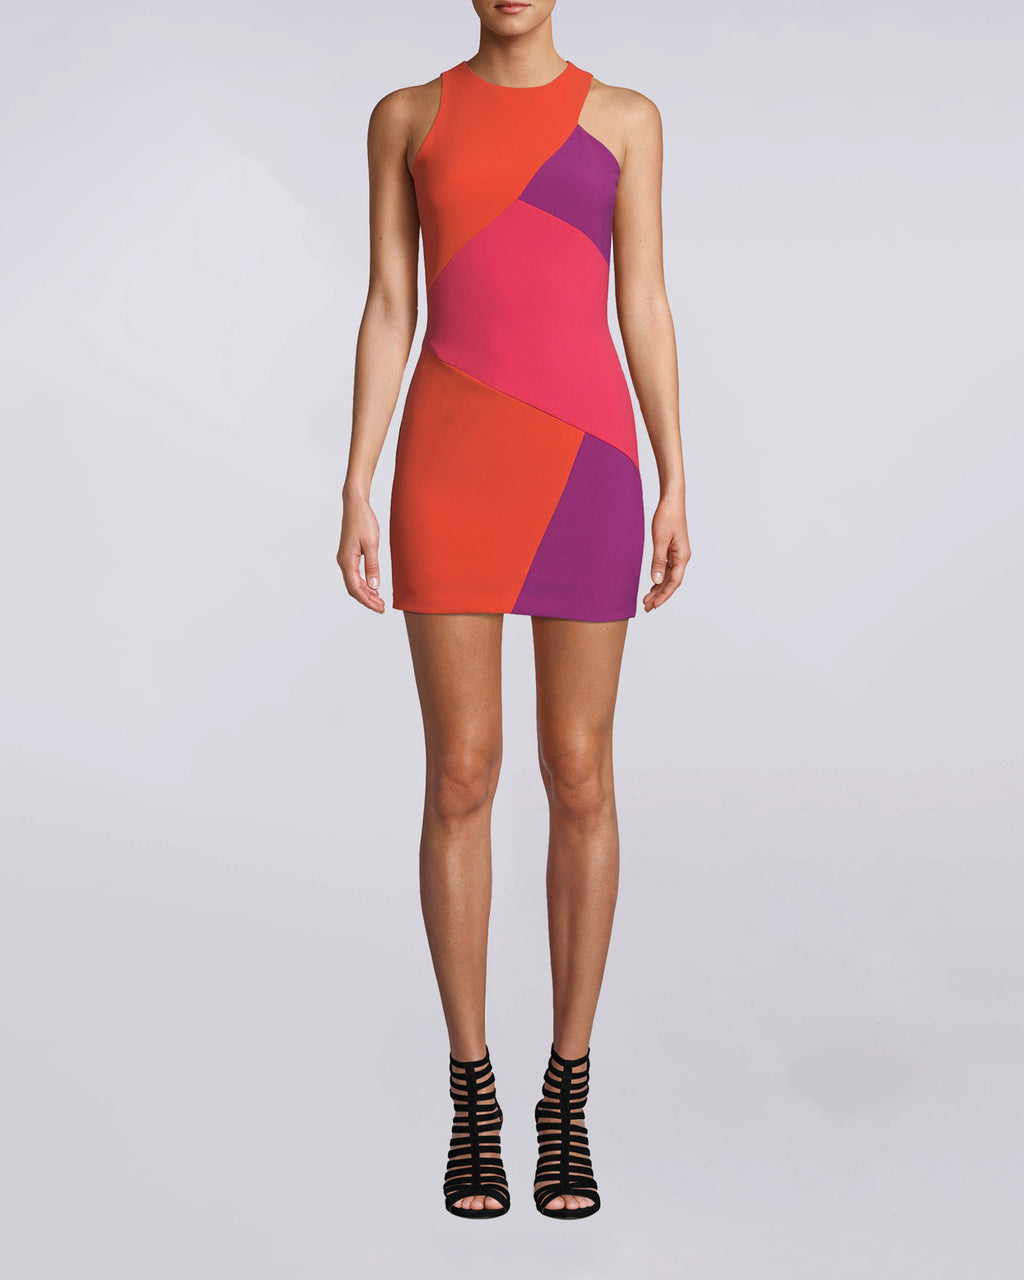 ac688a54b0be BH10464 - Color Block Sleeveless Mini Dress - dresses - short - We color  block the ...